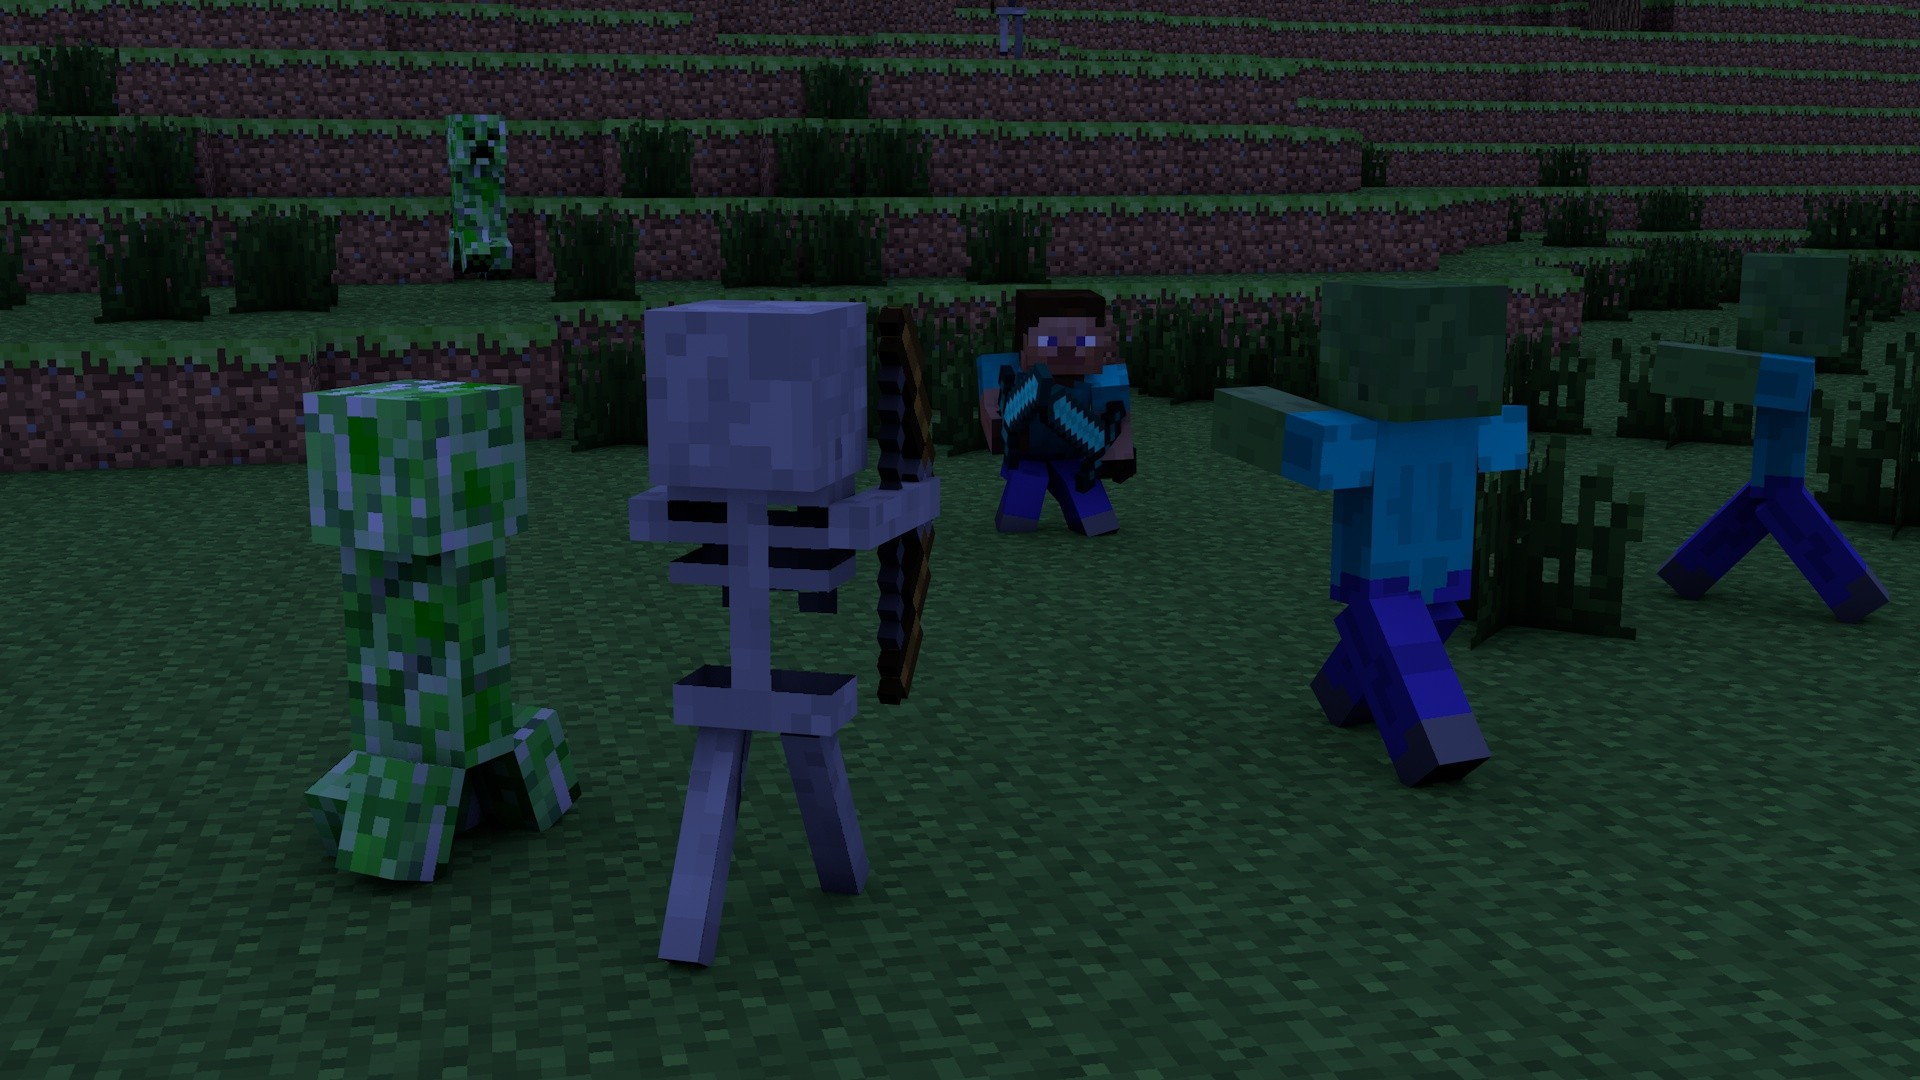 zombies Creeper Steve skeletons Minecraft cinema 4d swords tapeta